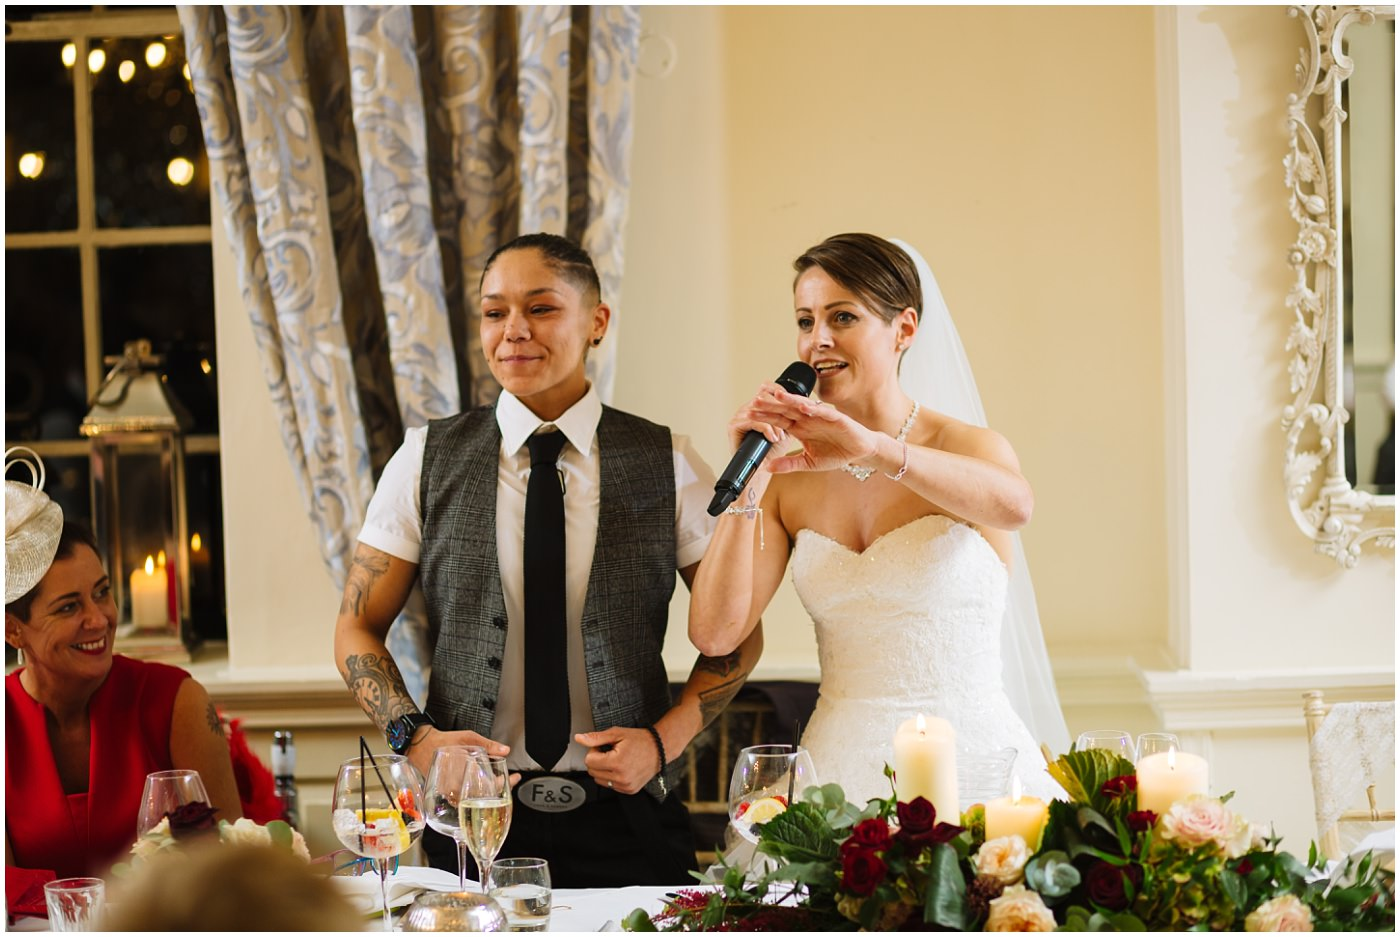 Brides speak and say thank you to family and guests